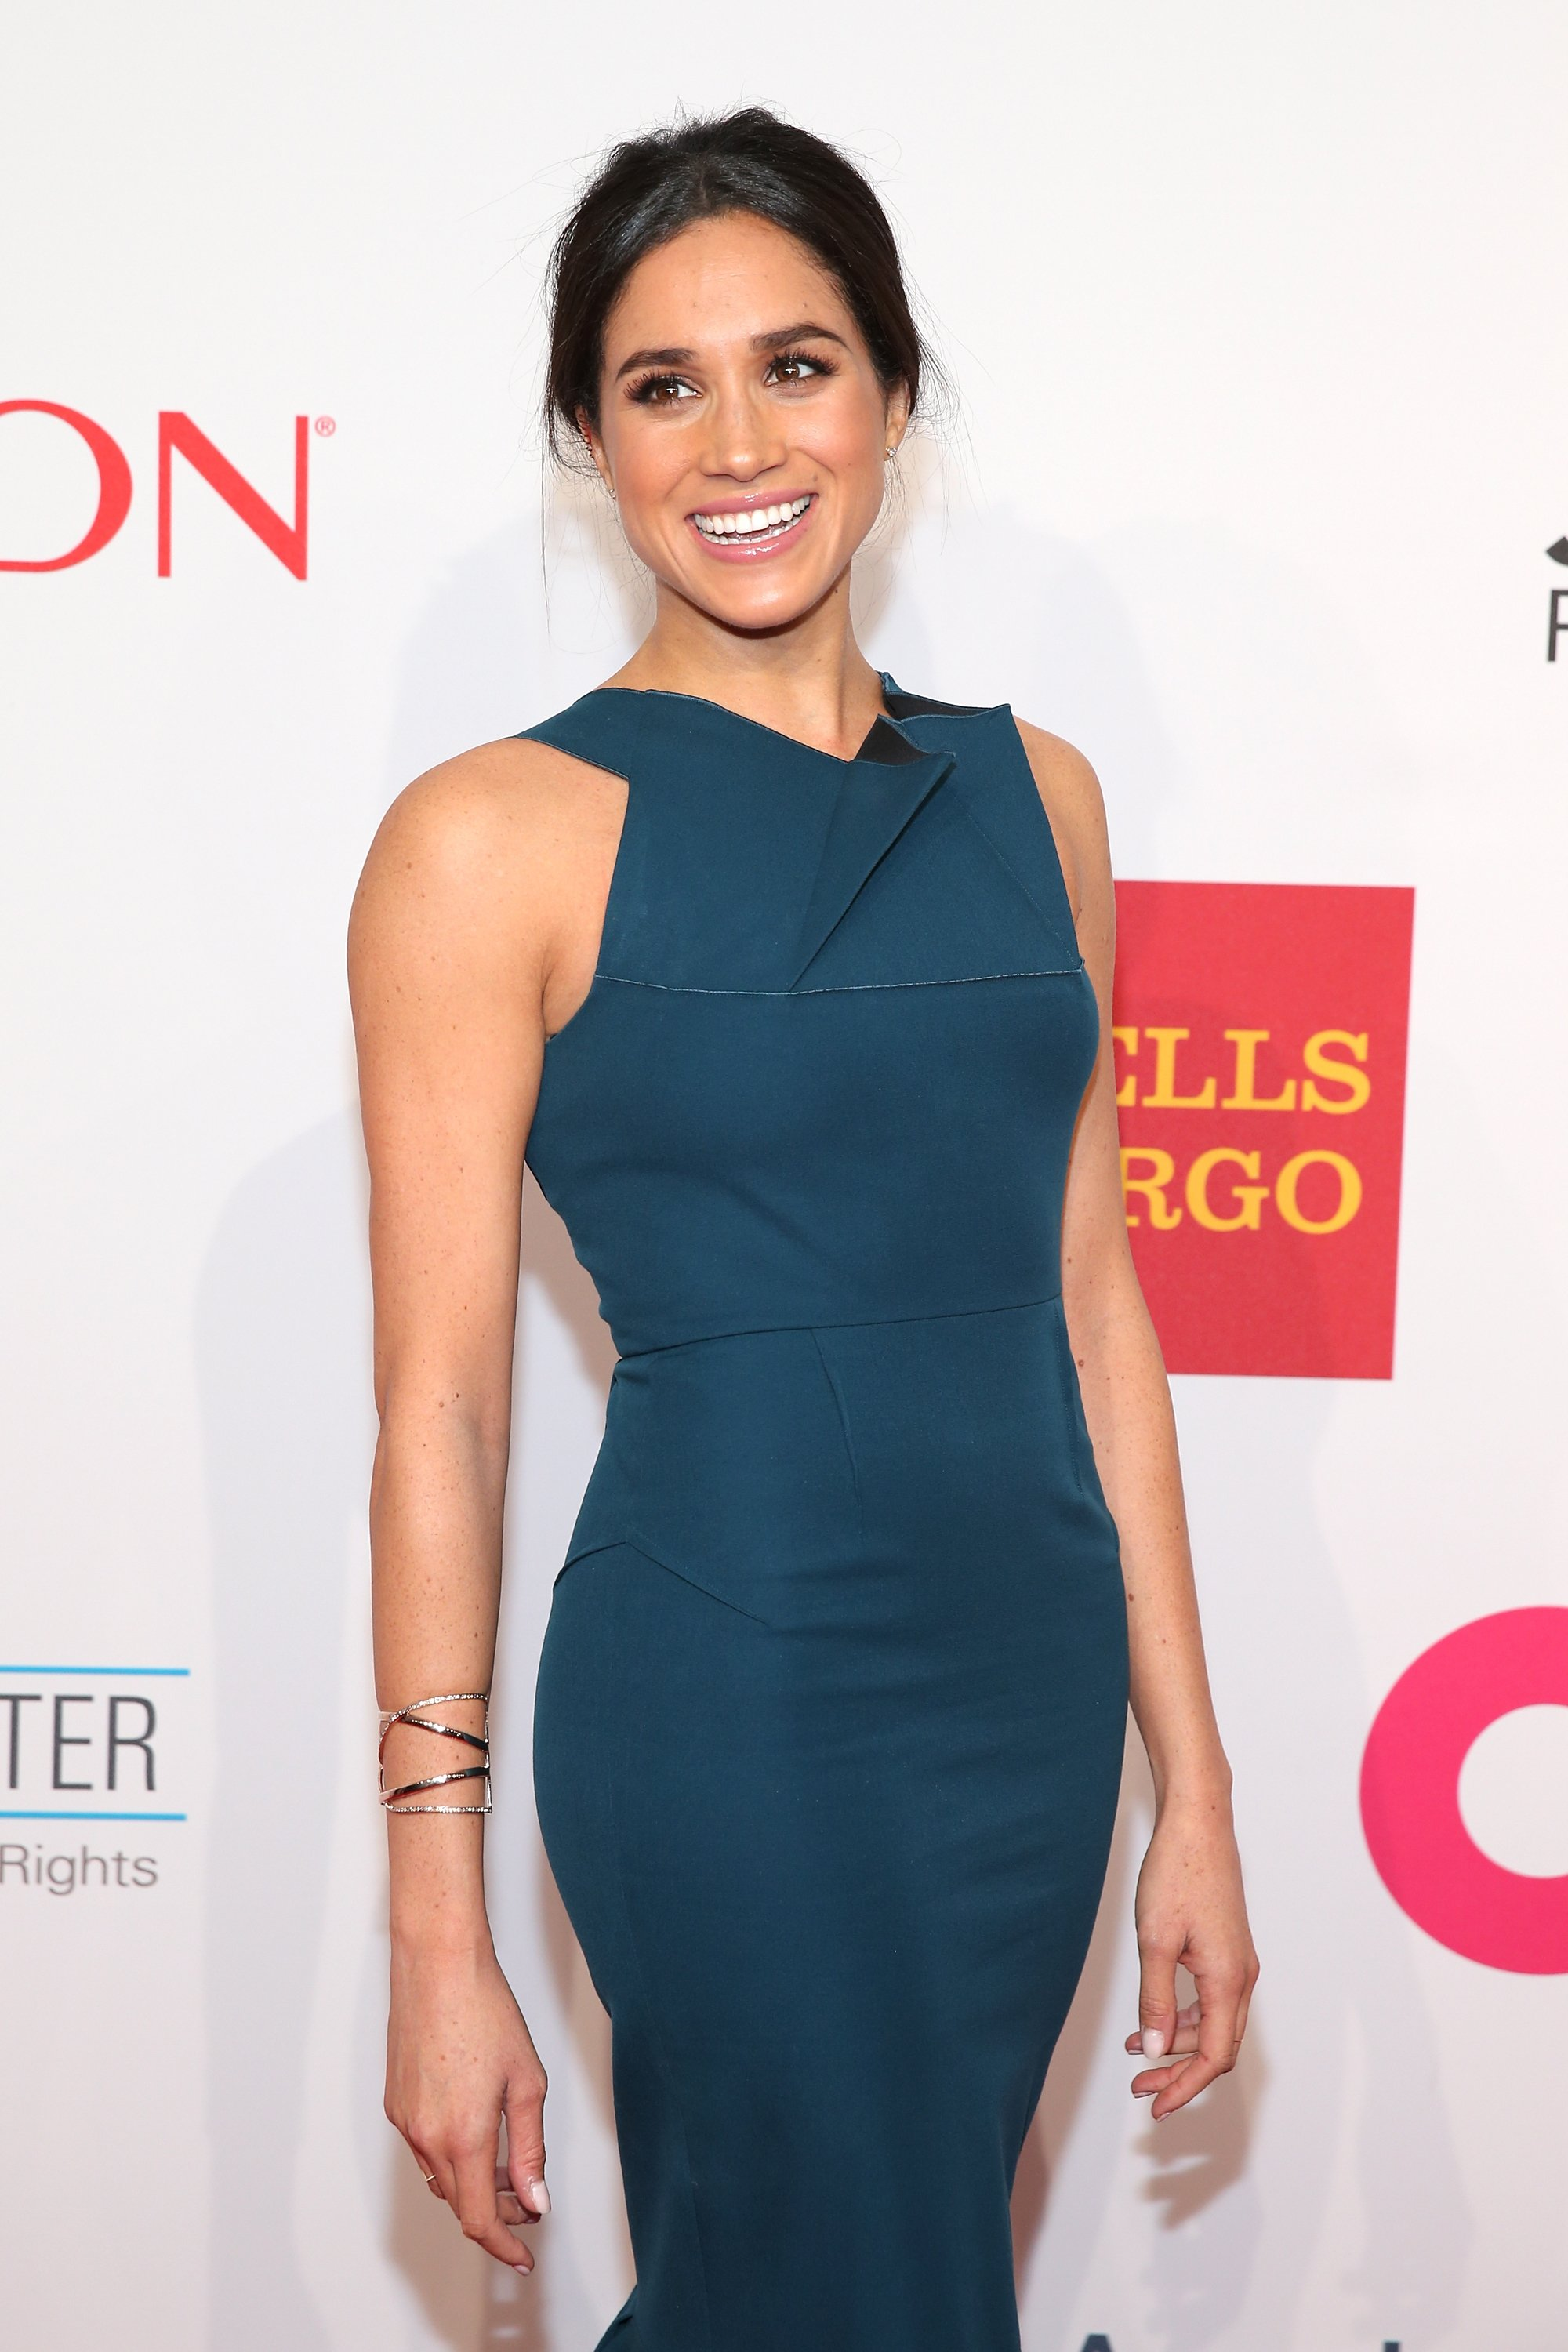 Image Credits: Getty Images / Neilson Barnard   Model Meghan Markle attends the Elton John AIDS Foundation's 13th Annual An Enduring Vision Benefit at Cipriani Wall Street powered by CIROC Vodka on October 28, 2014 in New York City.